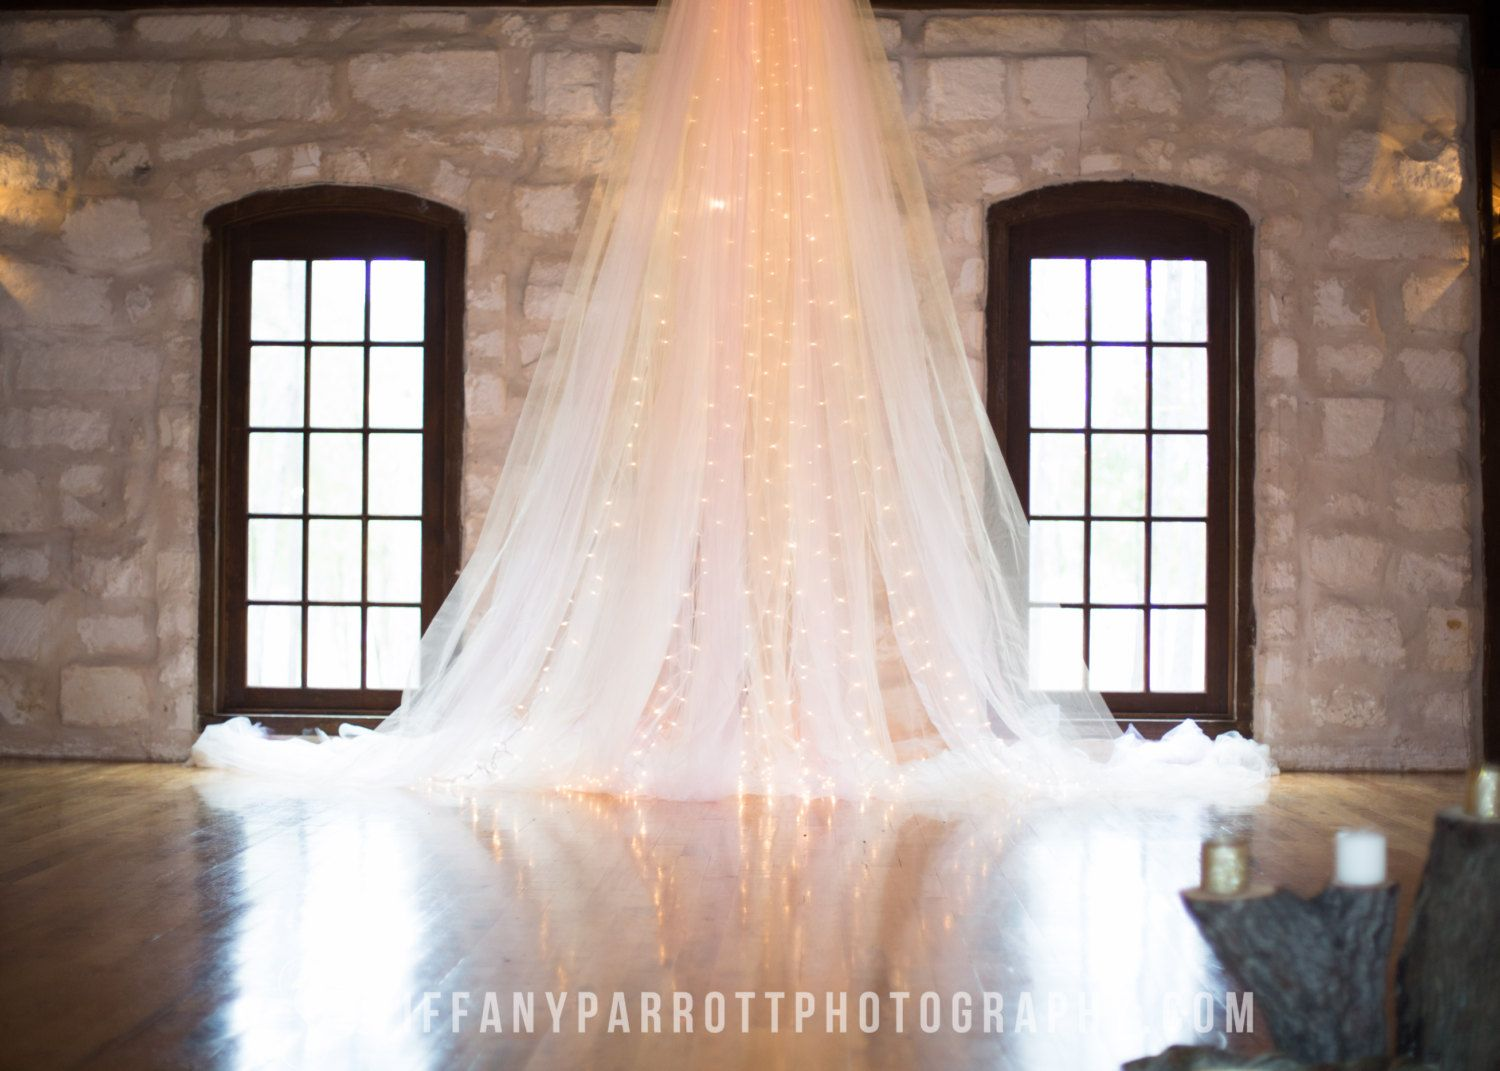 Diy Wedding Backdrop With Lights Tulle And Lights Backdrop 250 00 Via Etsy Happily